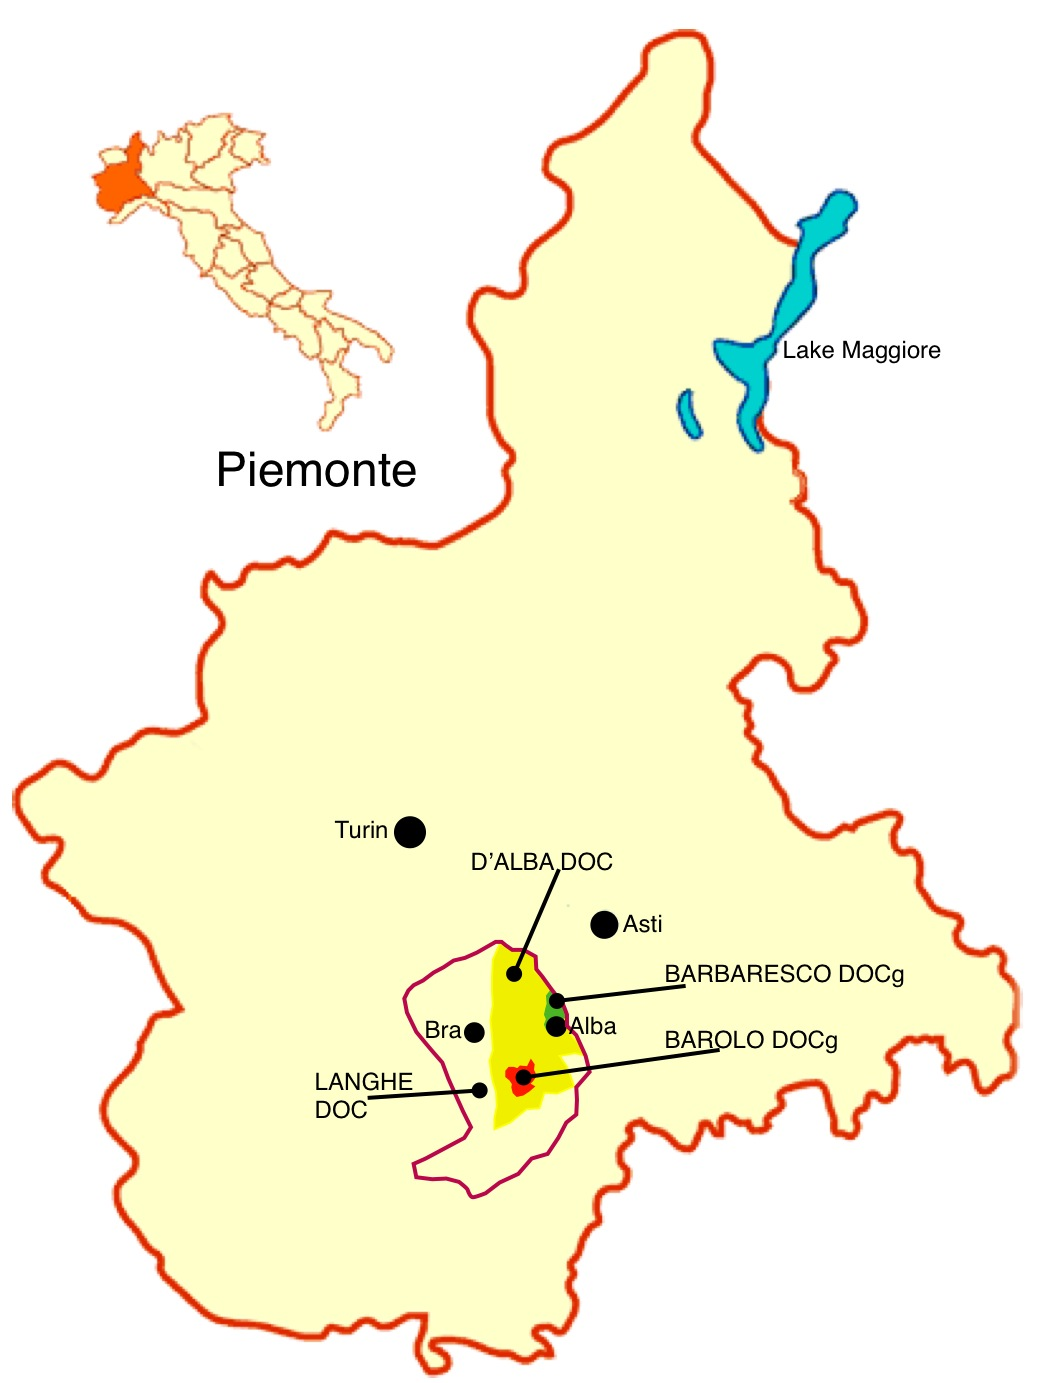 Map of Barolo Wine Region http://quentinsadler.wordpress.com/2009/11/19/getting-to-grips-with-nebbiolo/